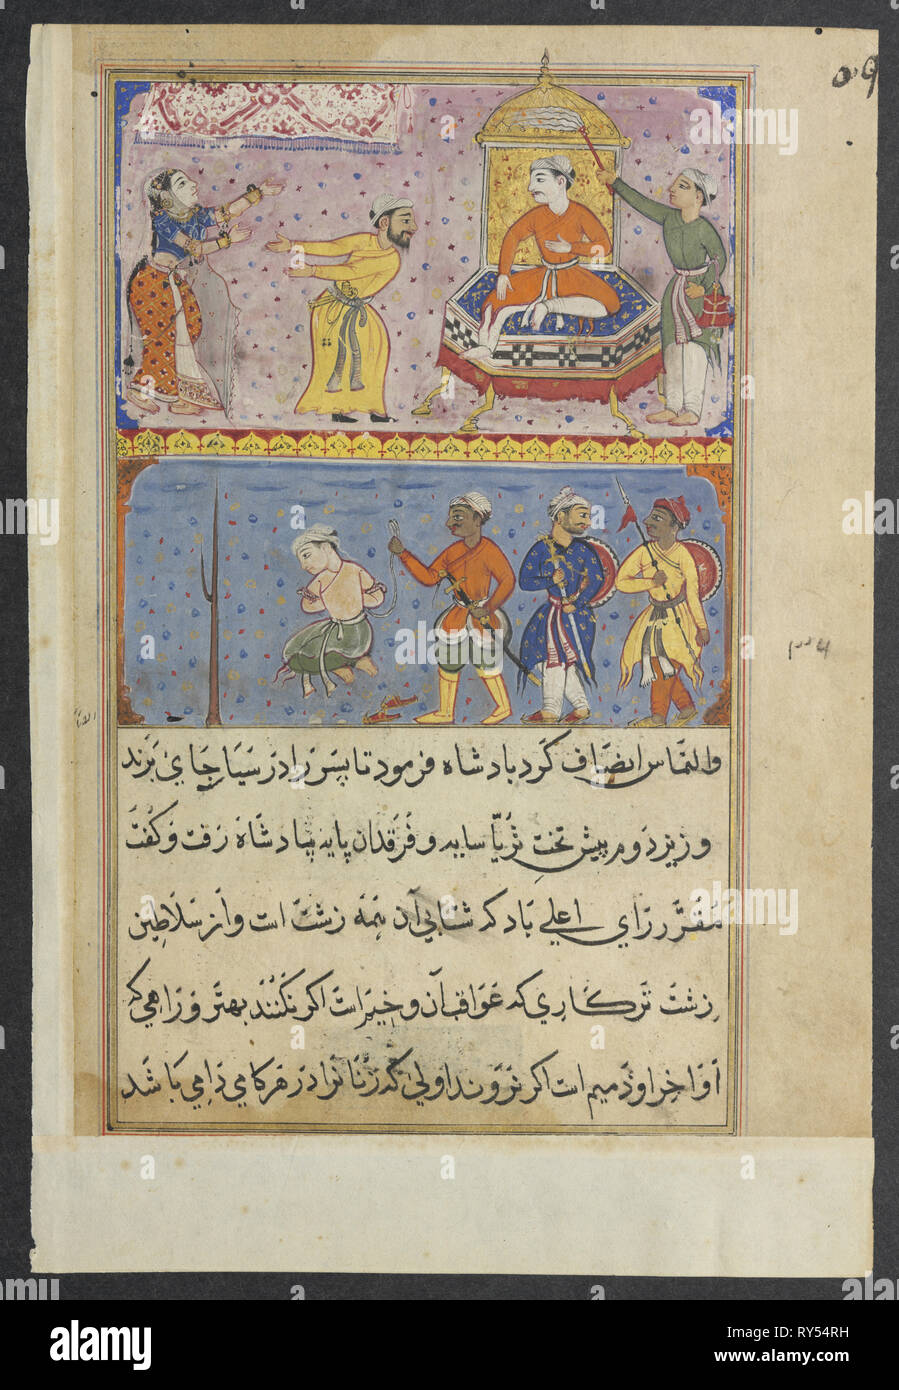 Page from Tales of a Parrot (Tuti-nama): Eighth night: The prince, once reprieved, is returned to the palace of execution a second time on the plea of the king's handmaiden, c. 1560. India, Mughal, Reign of Akbar, 16th century. Opaque watercolor, ink and gold on paper; overall: 20 x 13.6 cm (7 7/8 x 5 3/8 in - Stock Image